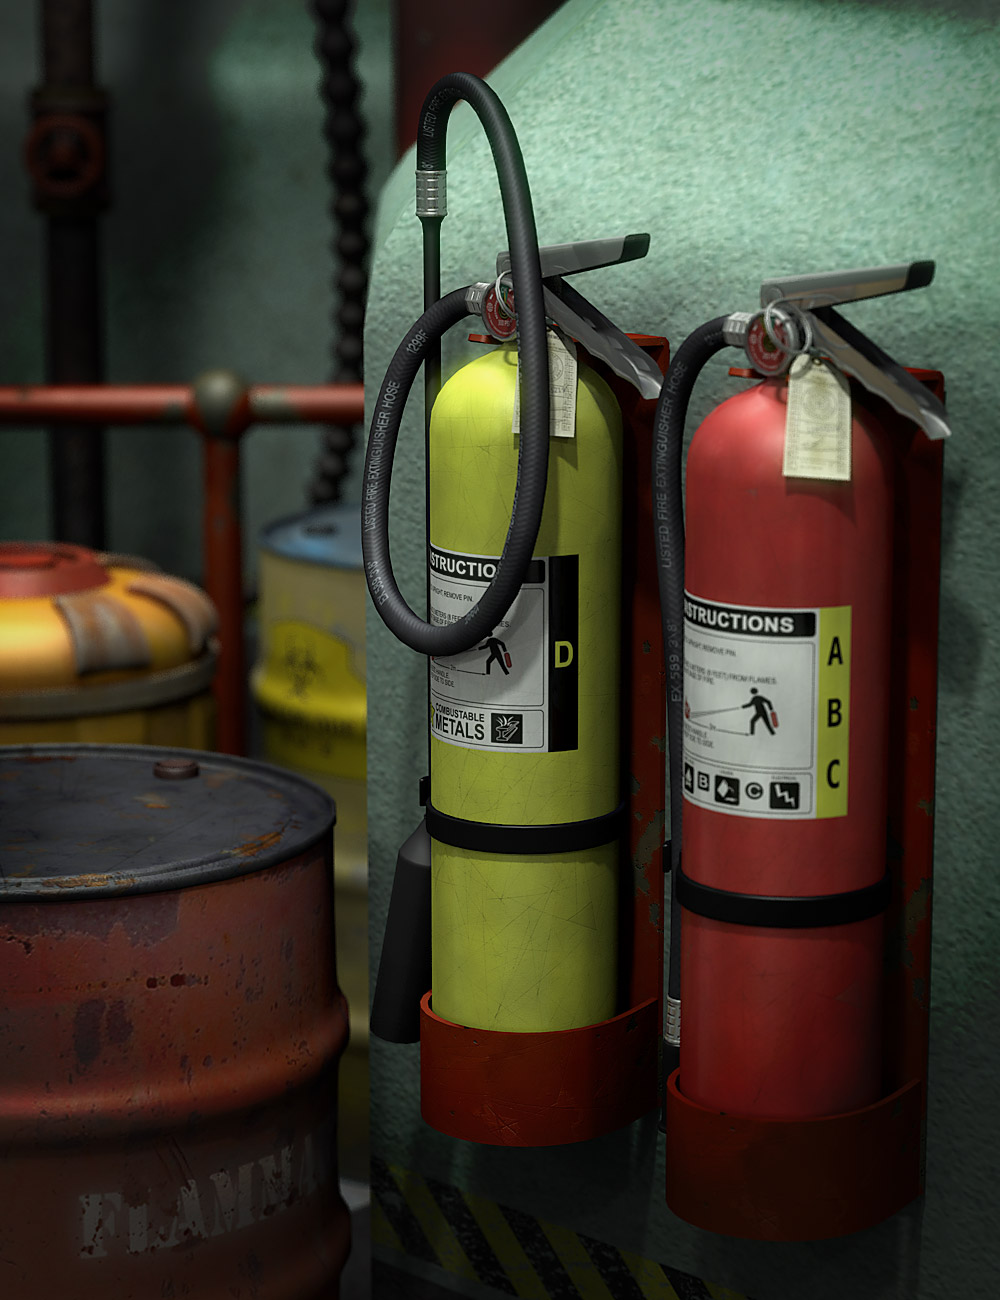 3d models of fire extinguishers and industrial equipment.